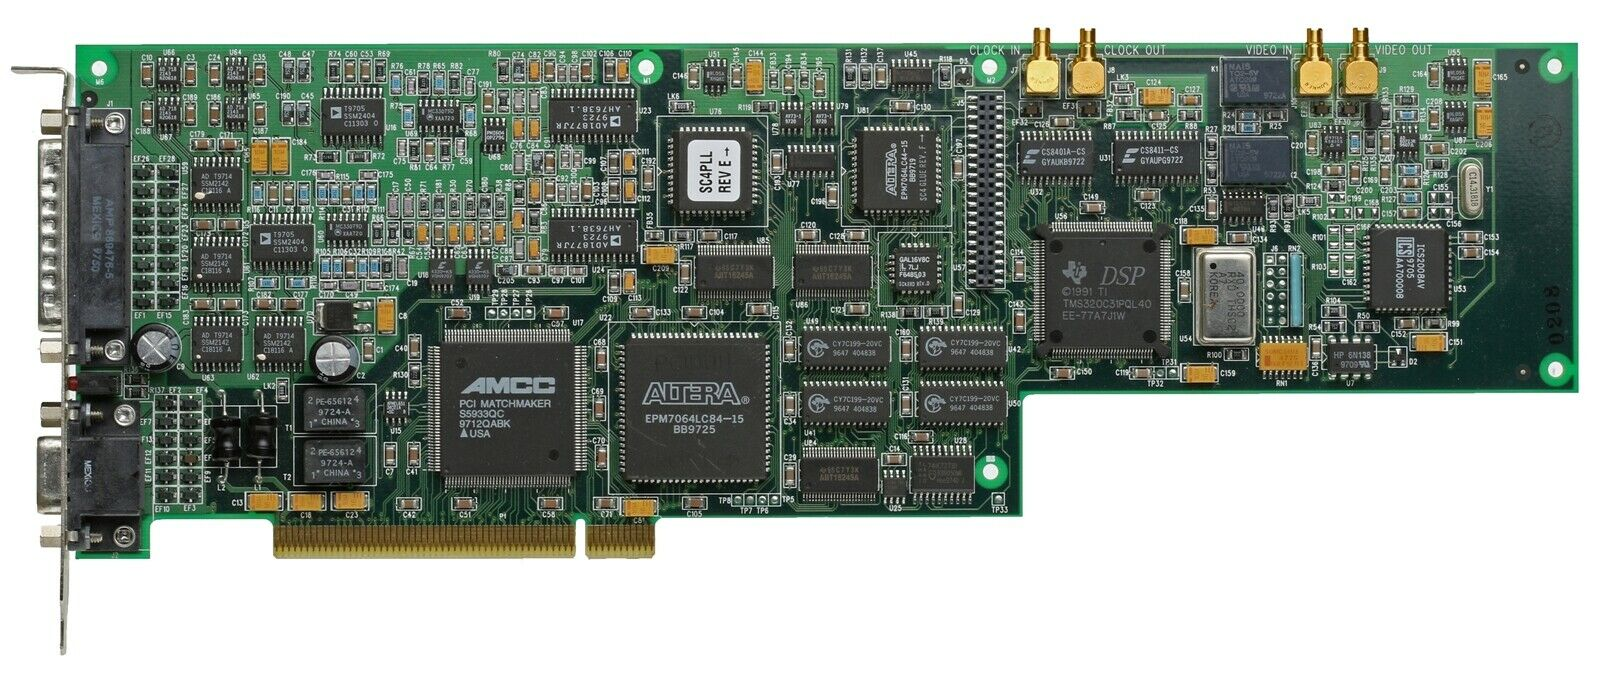 Antex StudioCard AV Pro SMPTE NLE Broadcast Studio Card Balanced Analog AES/EBU [Used]-www.prostudioconnection.com